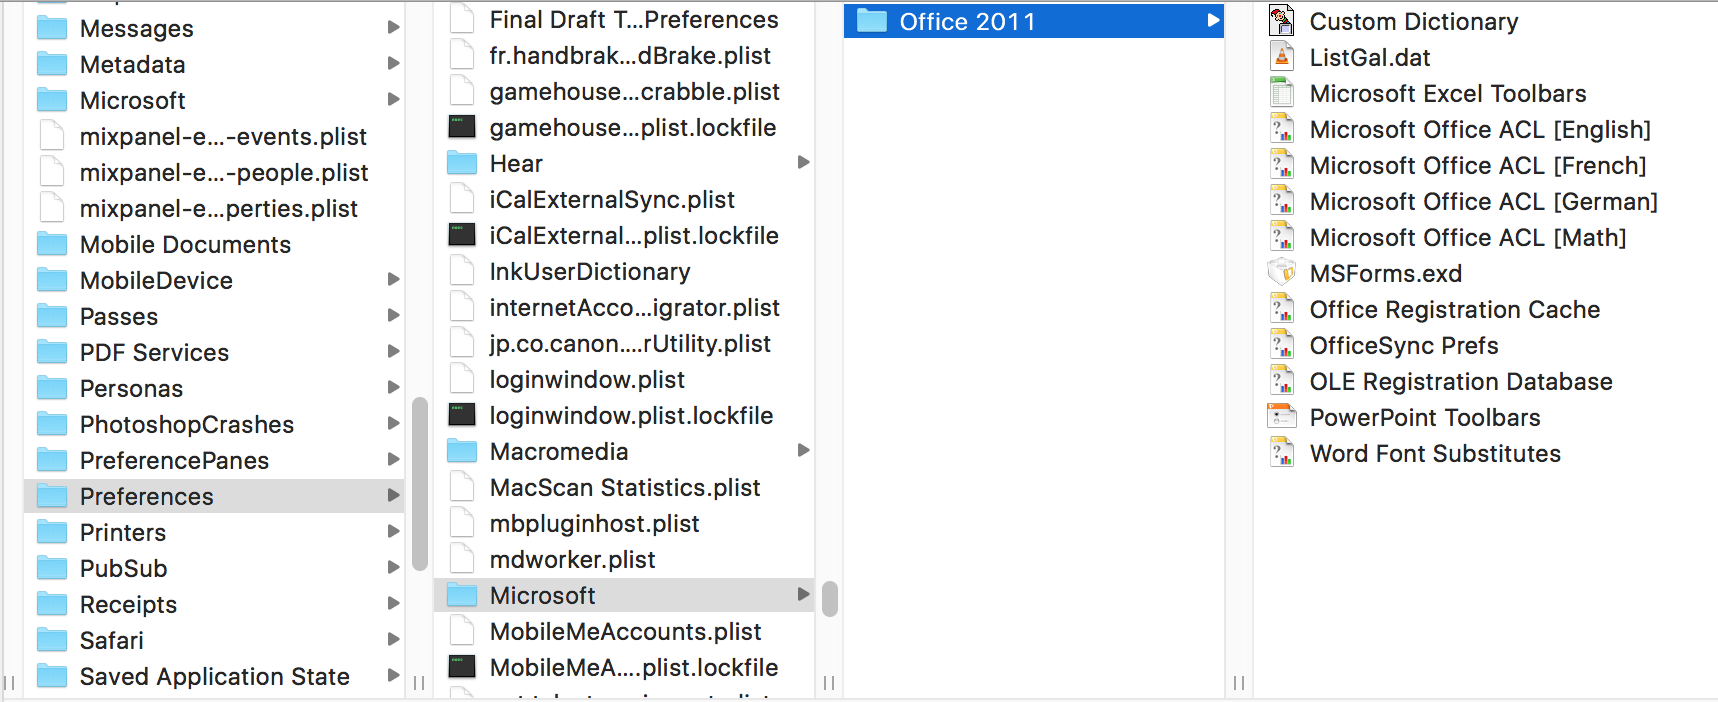 MS Word Font Menu Ridiculously Slow to dr… - Apple Community